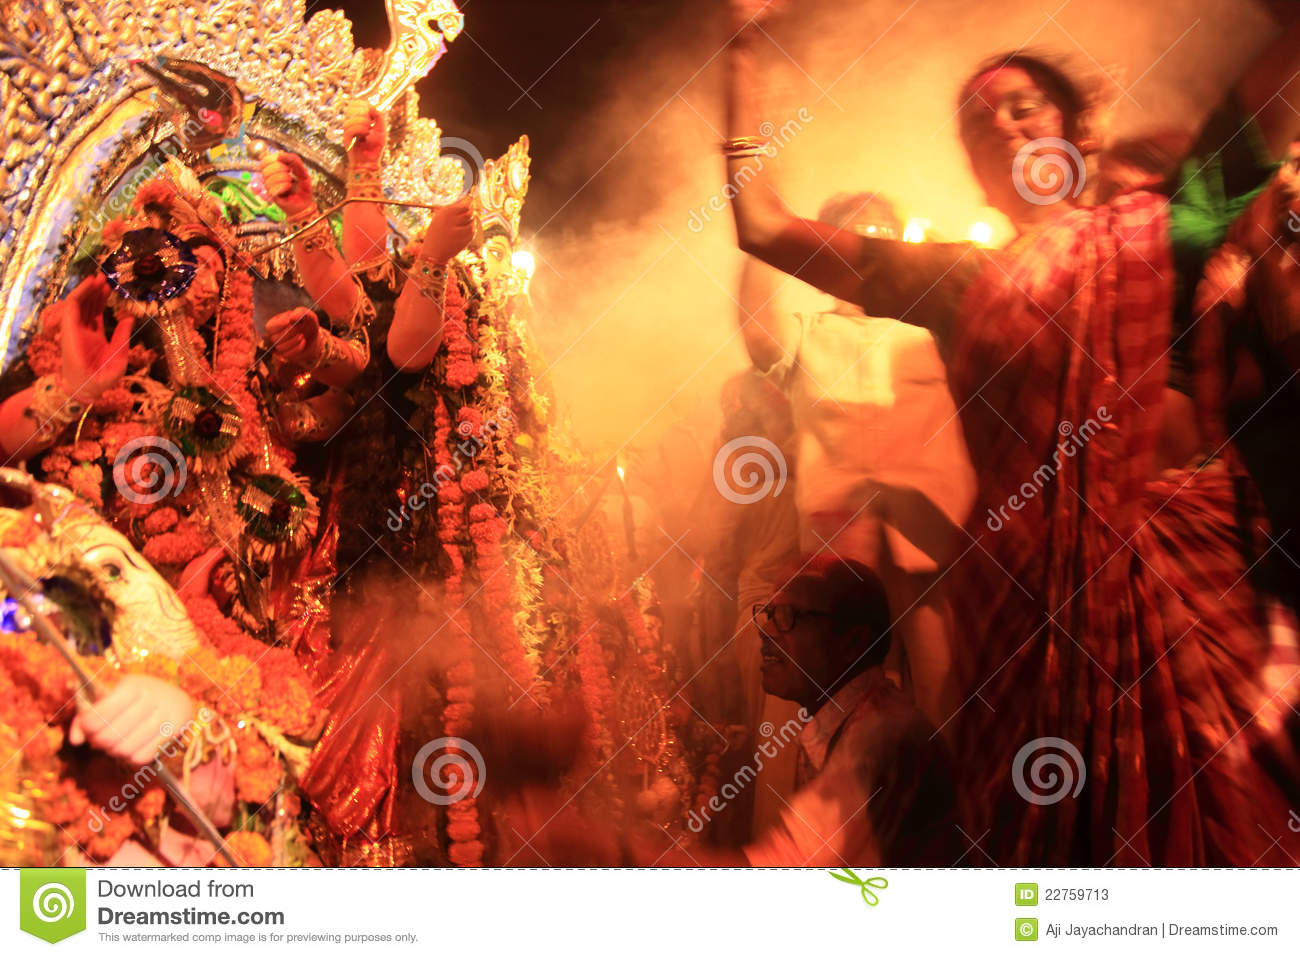 durga puja festival essay Durga puja essay - entrust your assignment to us and we will do our best for you perfectly crafted and custom academic writings experienced writers engaged in the.